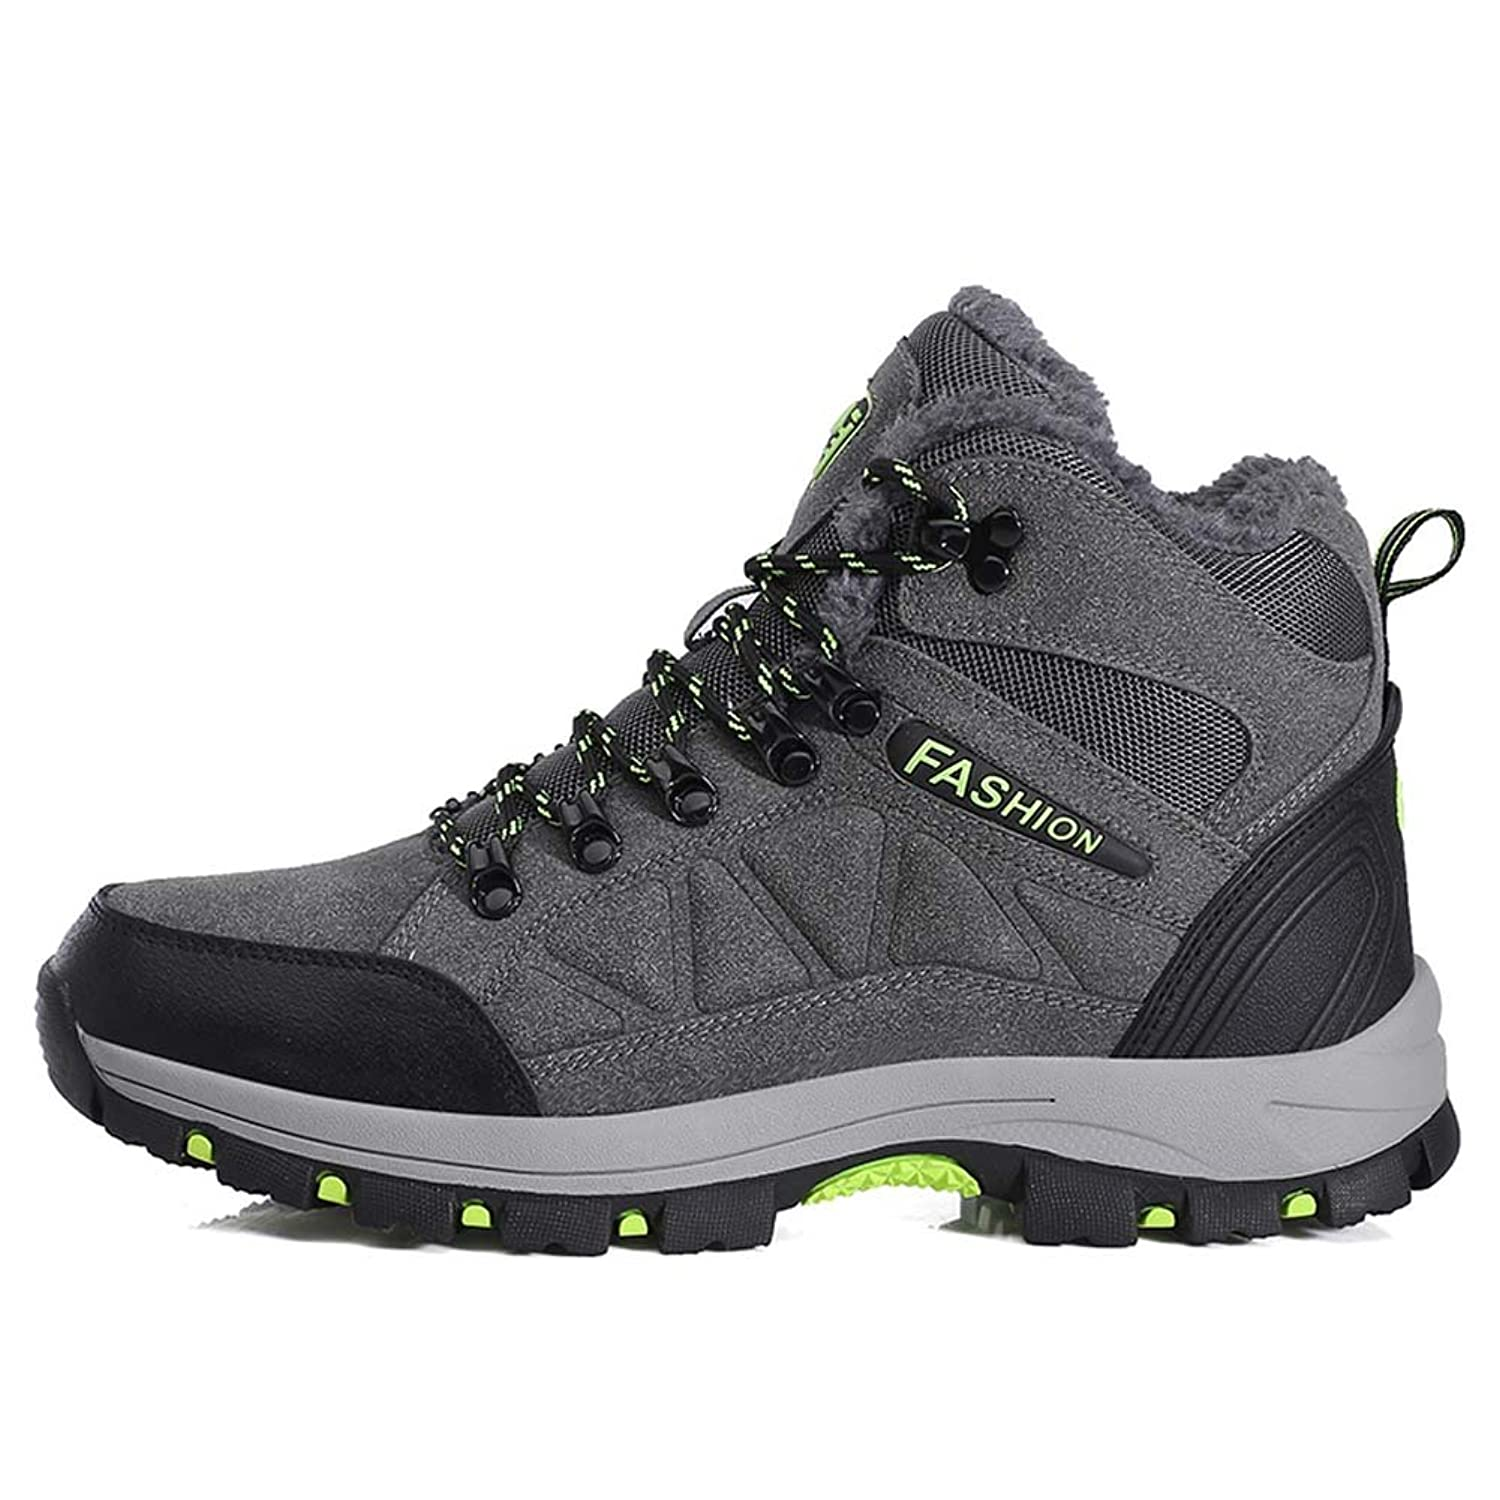 Winter Hiking Shoes Neutral Day Slip Outdoor Mountaineering Shoes